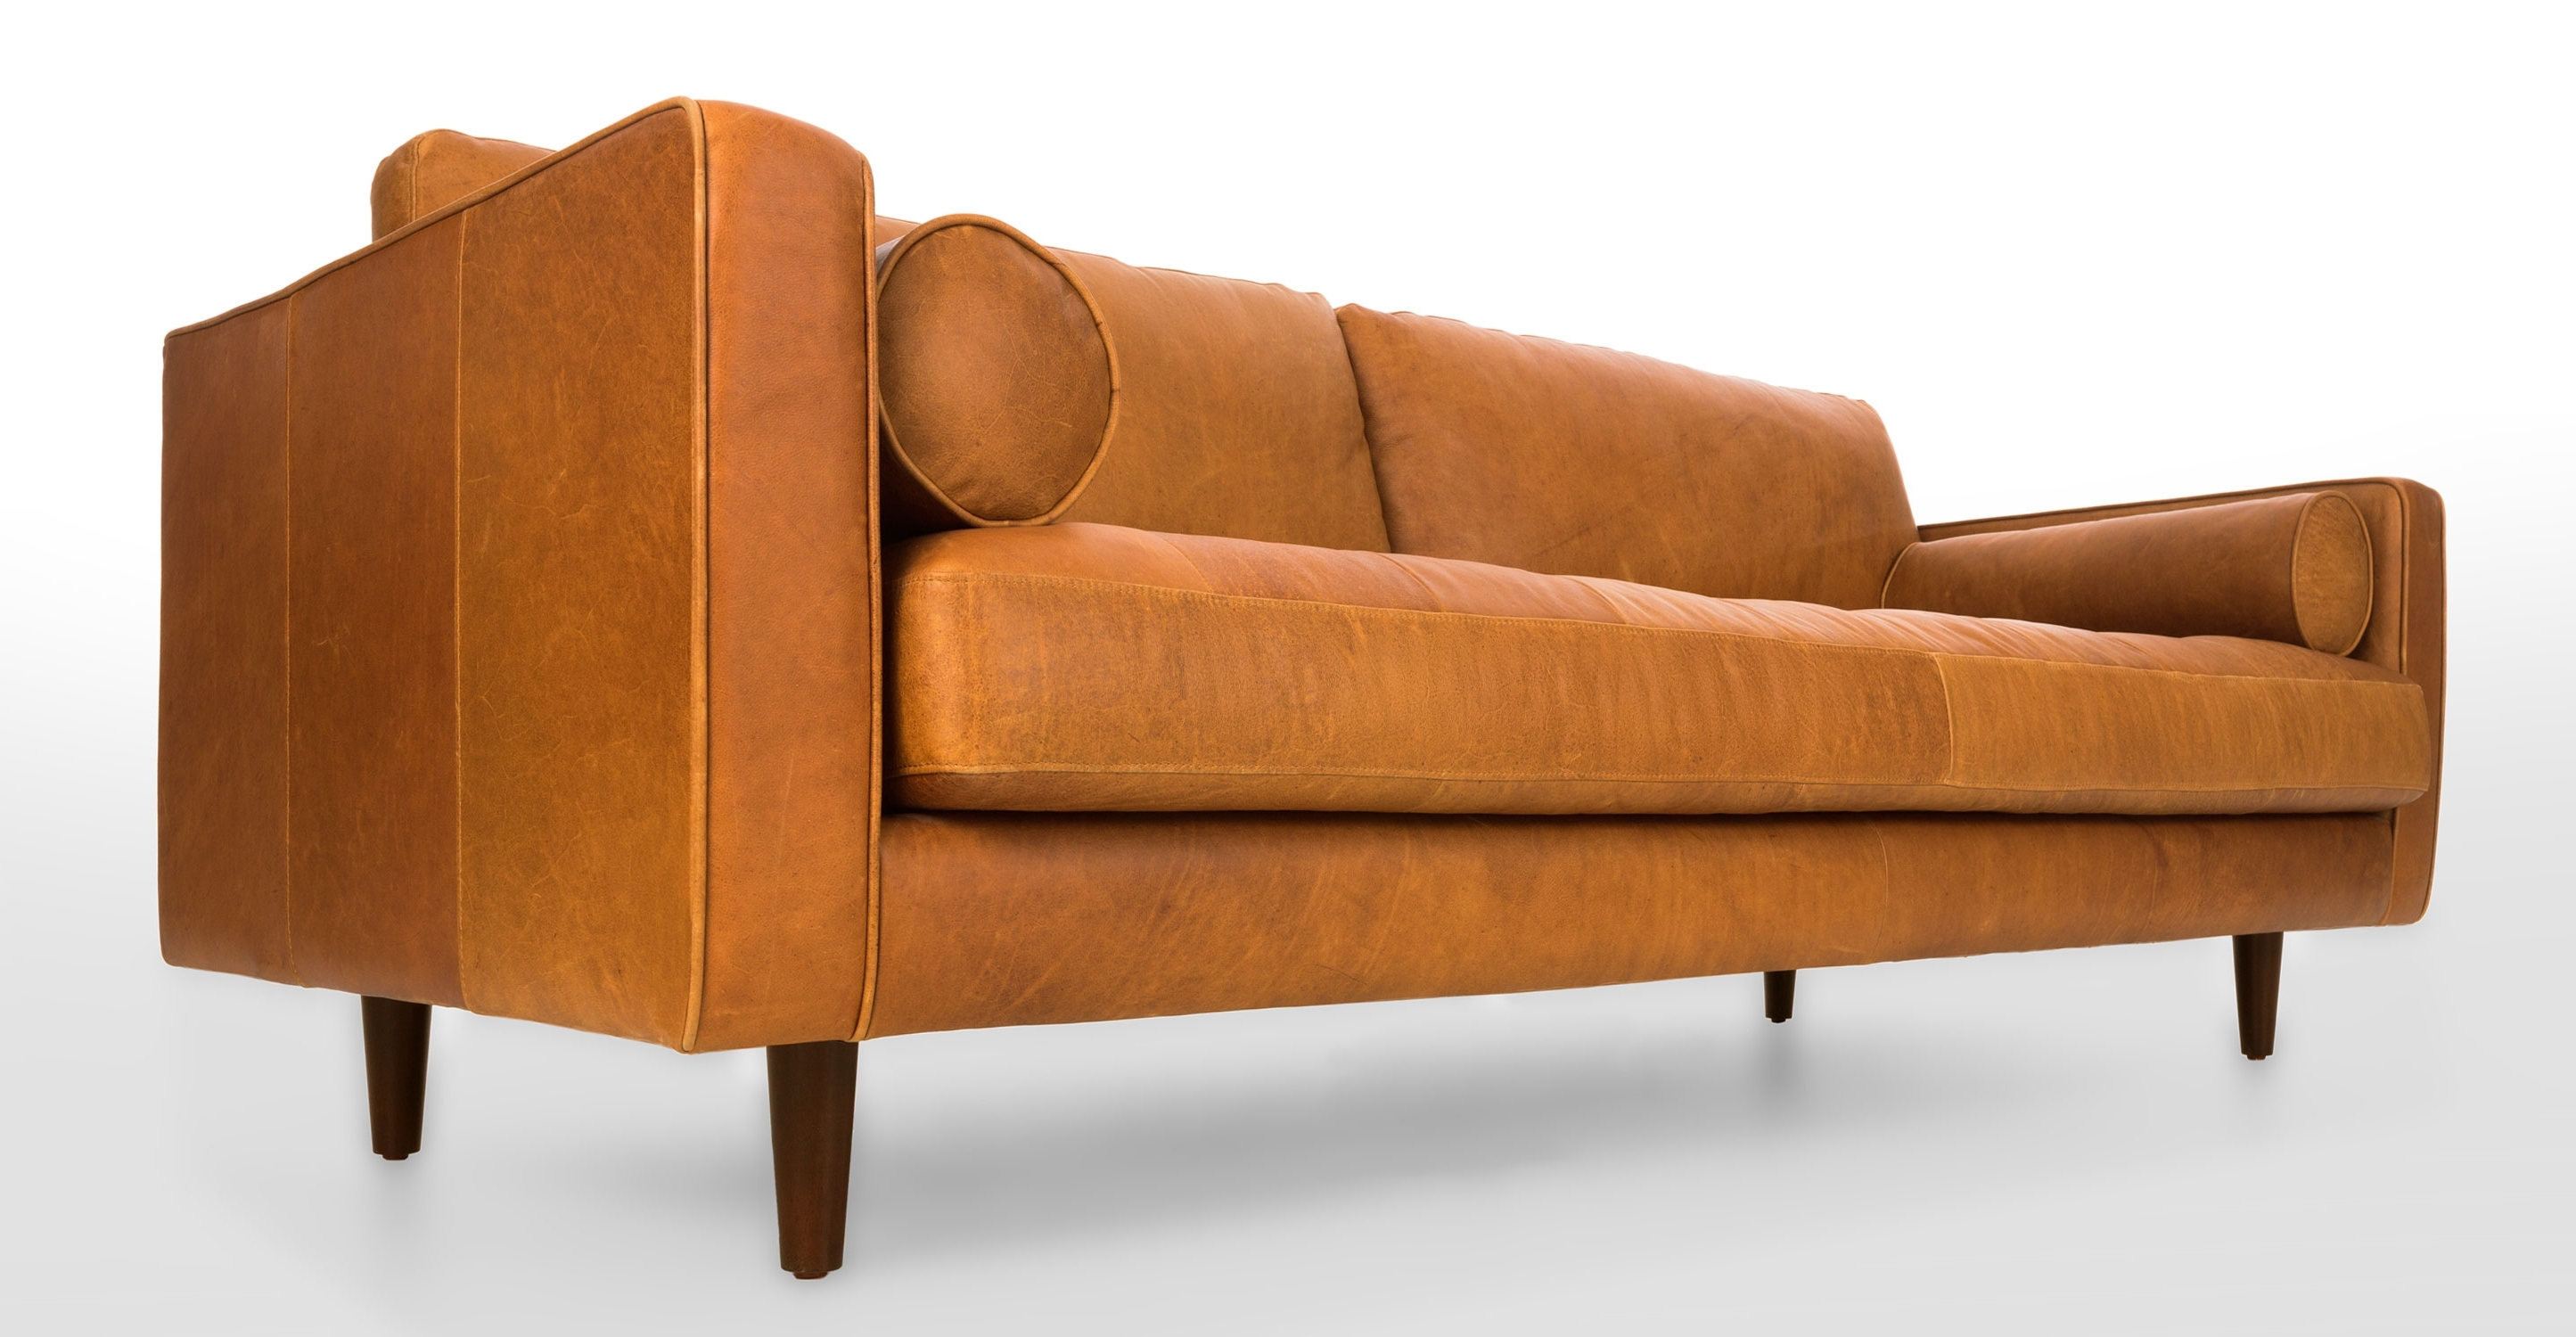 Popular Light Tan Leather Sofas In Tan Leather Sofa (View 11 of 15)